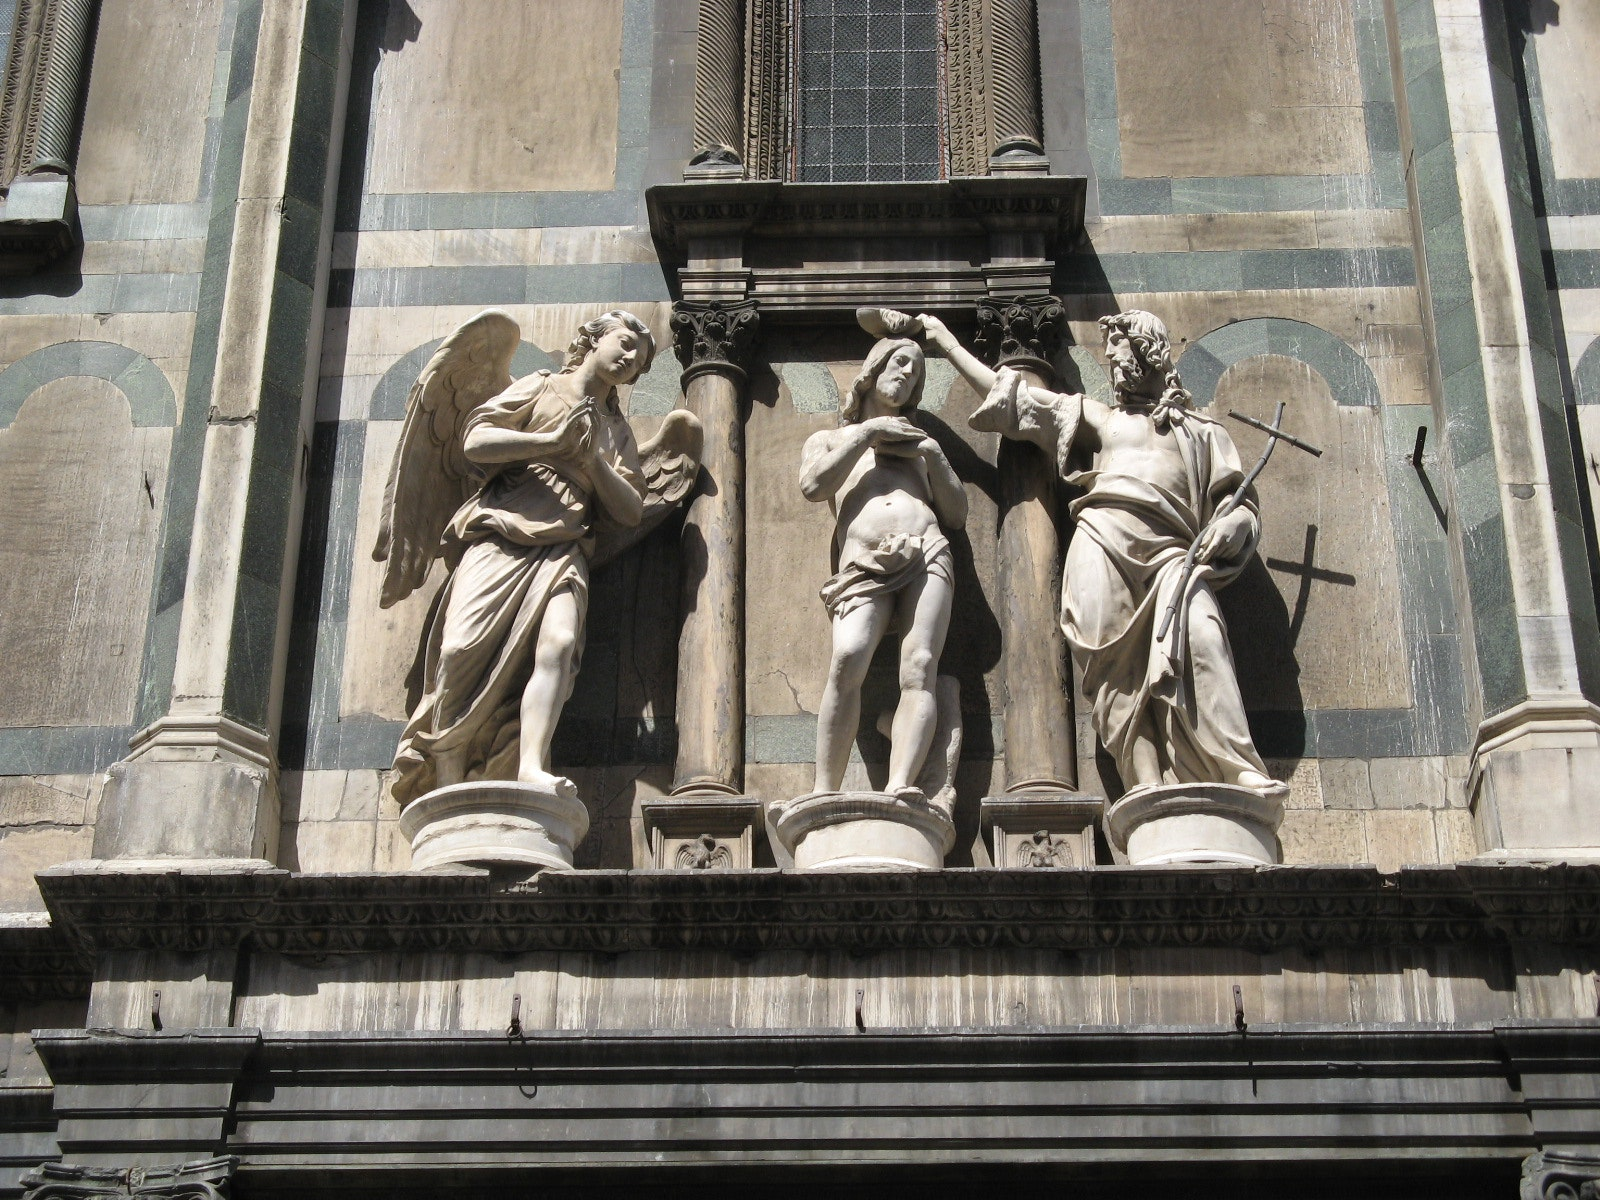 Above the doors stood three different groups of statues. Over the southern doors the famous bronzes depicting the Beheading of St. John by Vincenzo Danti ... & Florence Baptistery:Visit Florence and the Baptistery of St.John